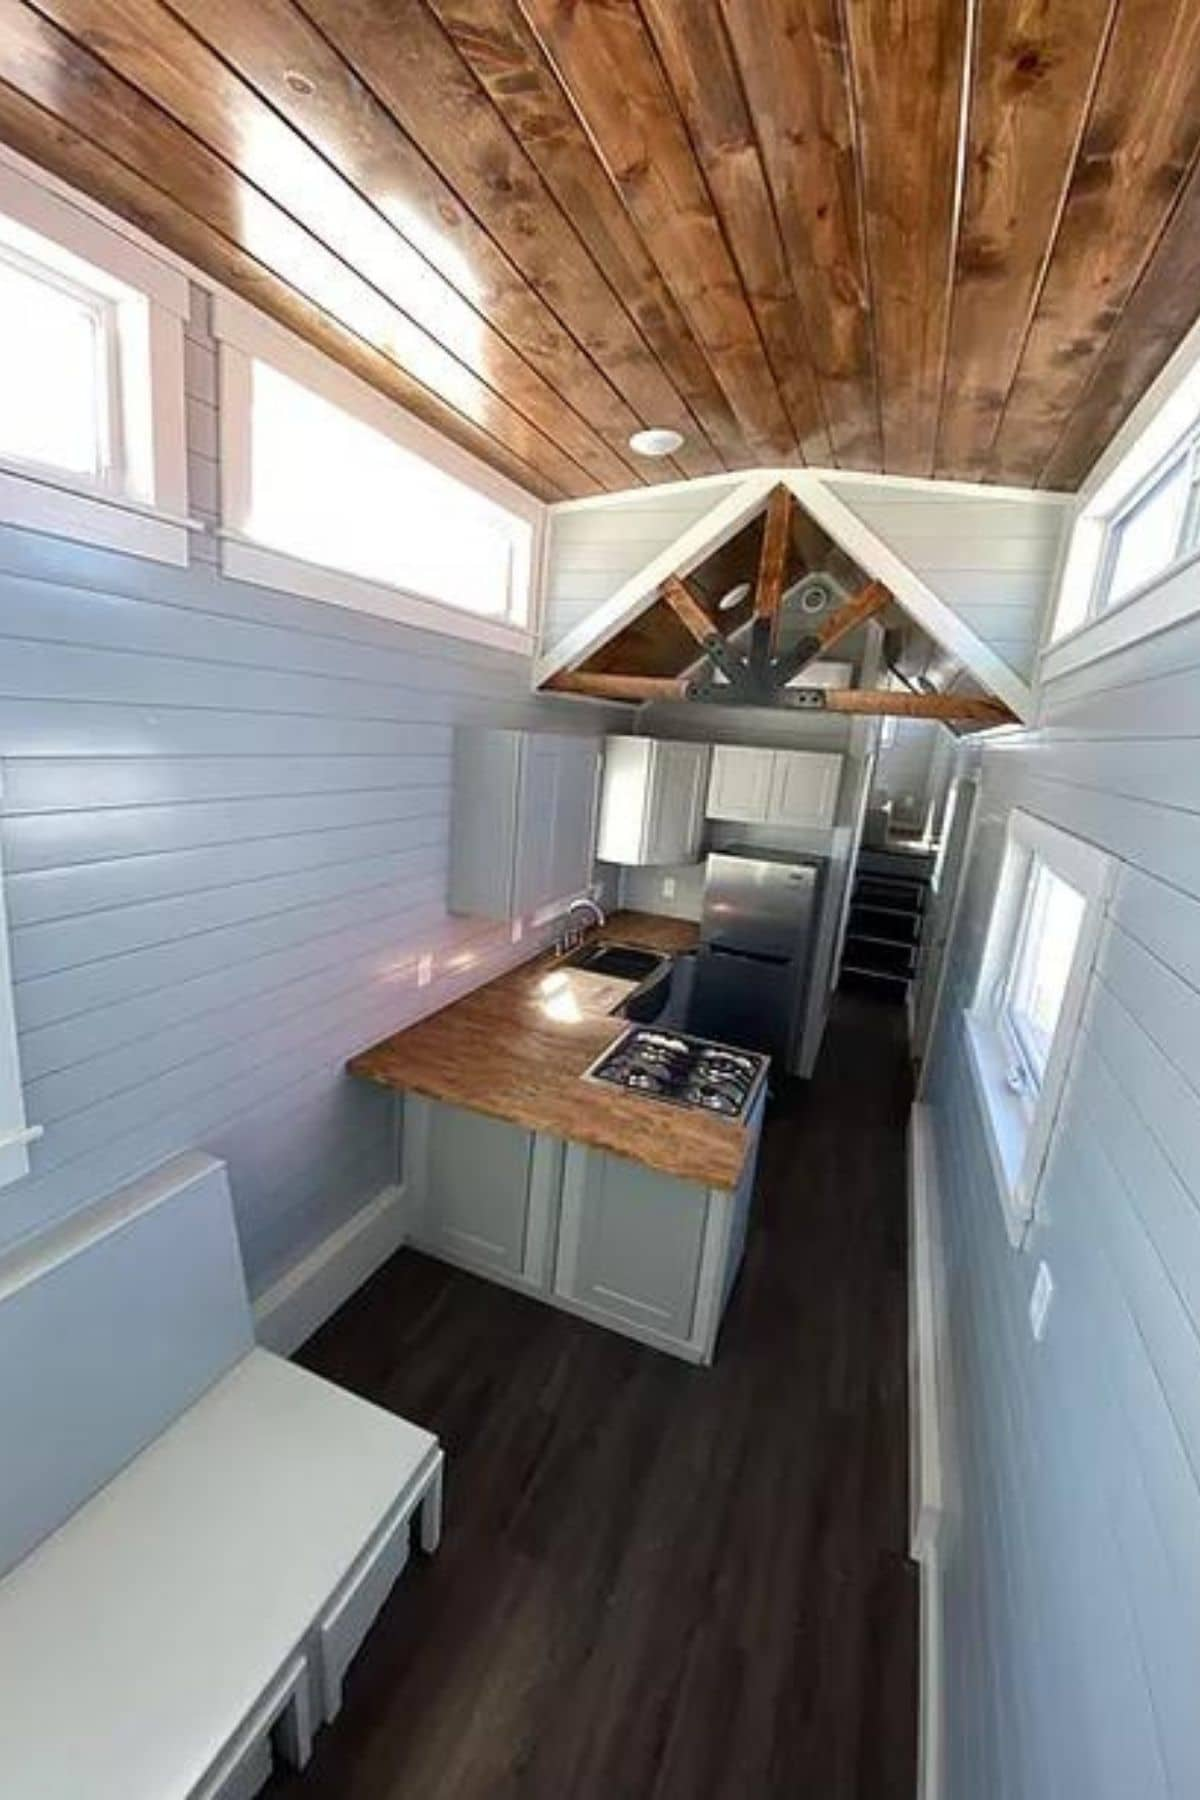 White shiplap walls and wood ceiling inside tiny home on wheels